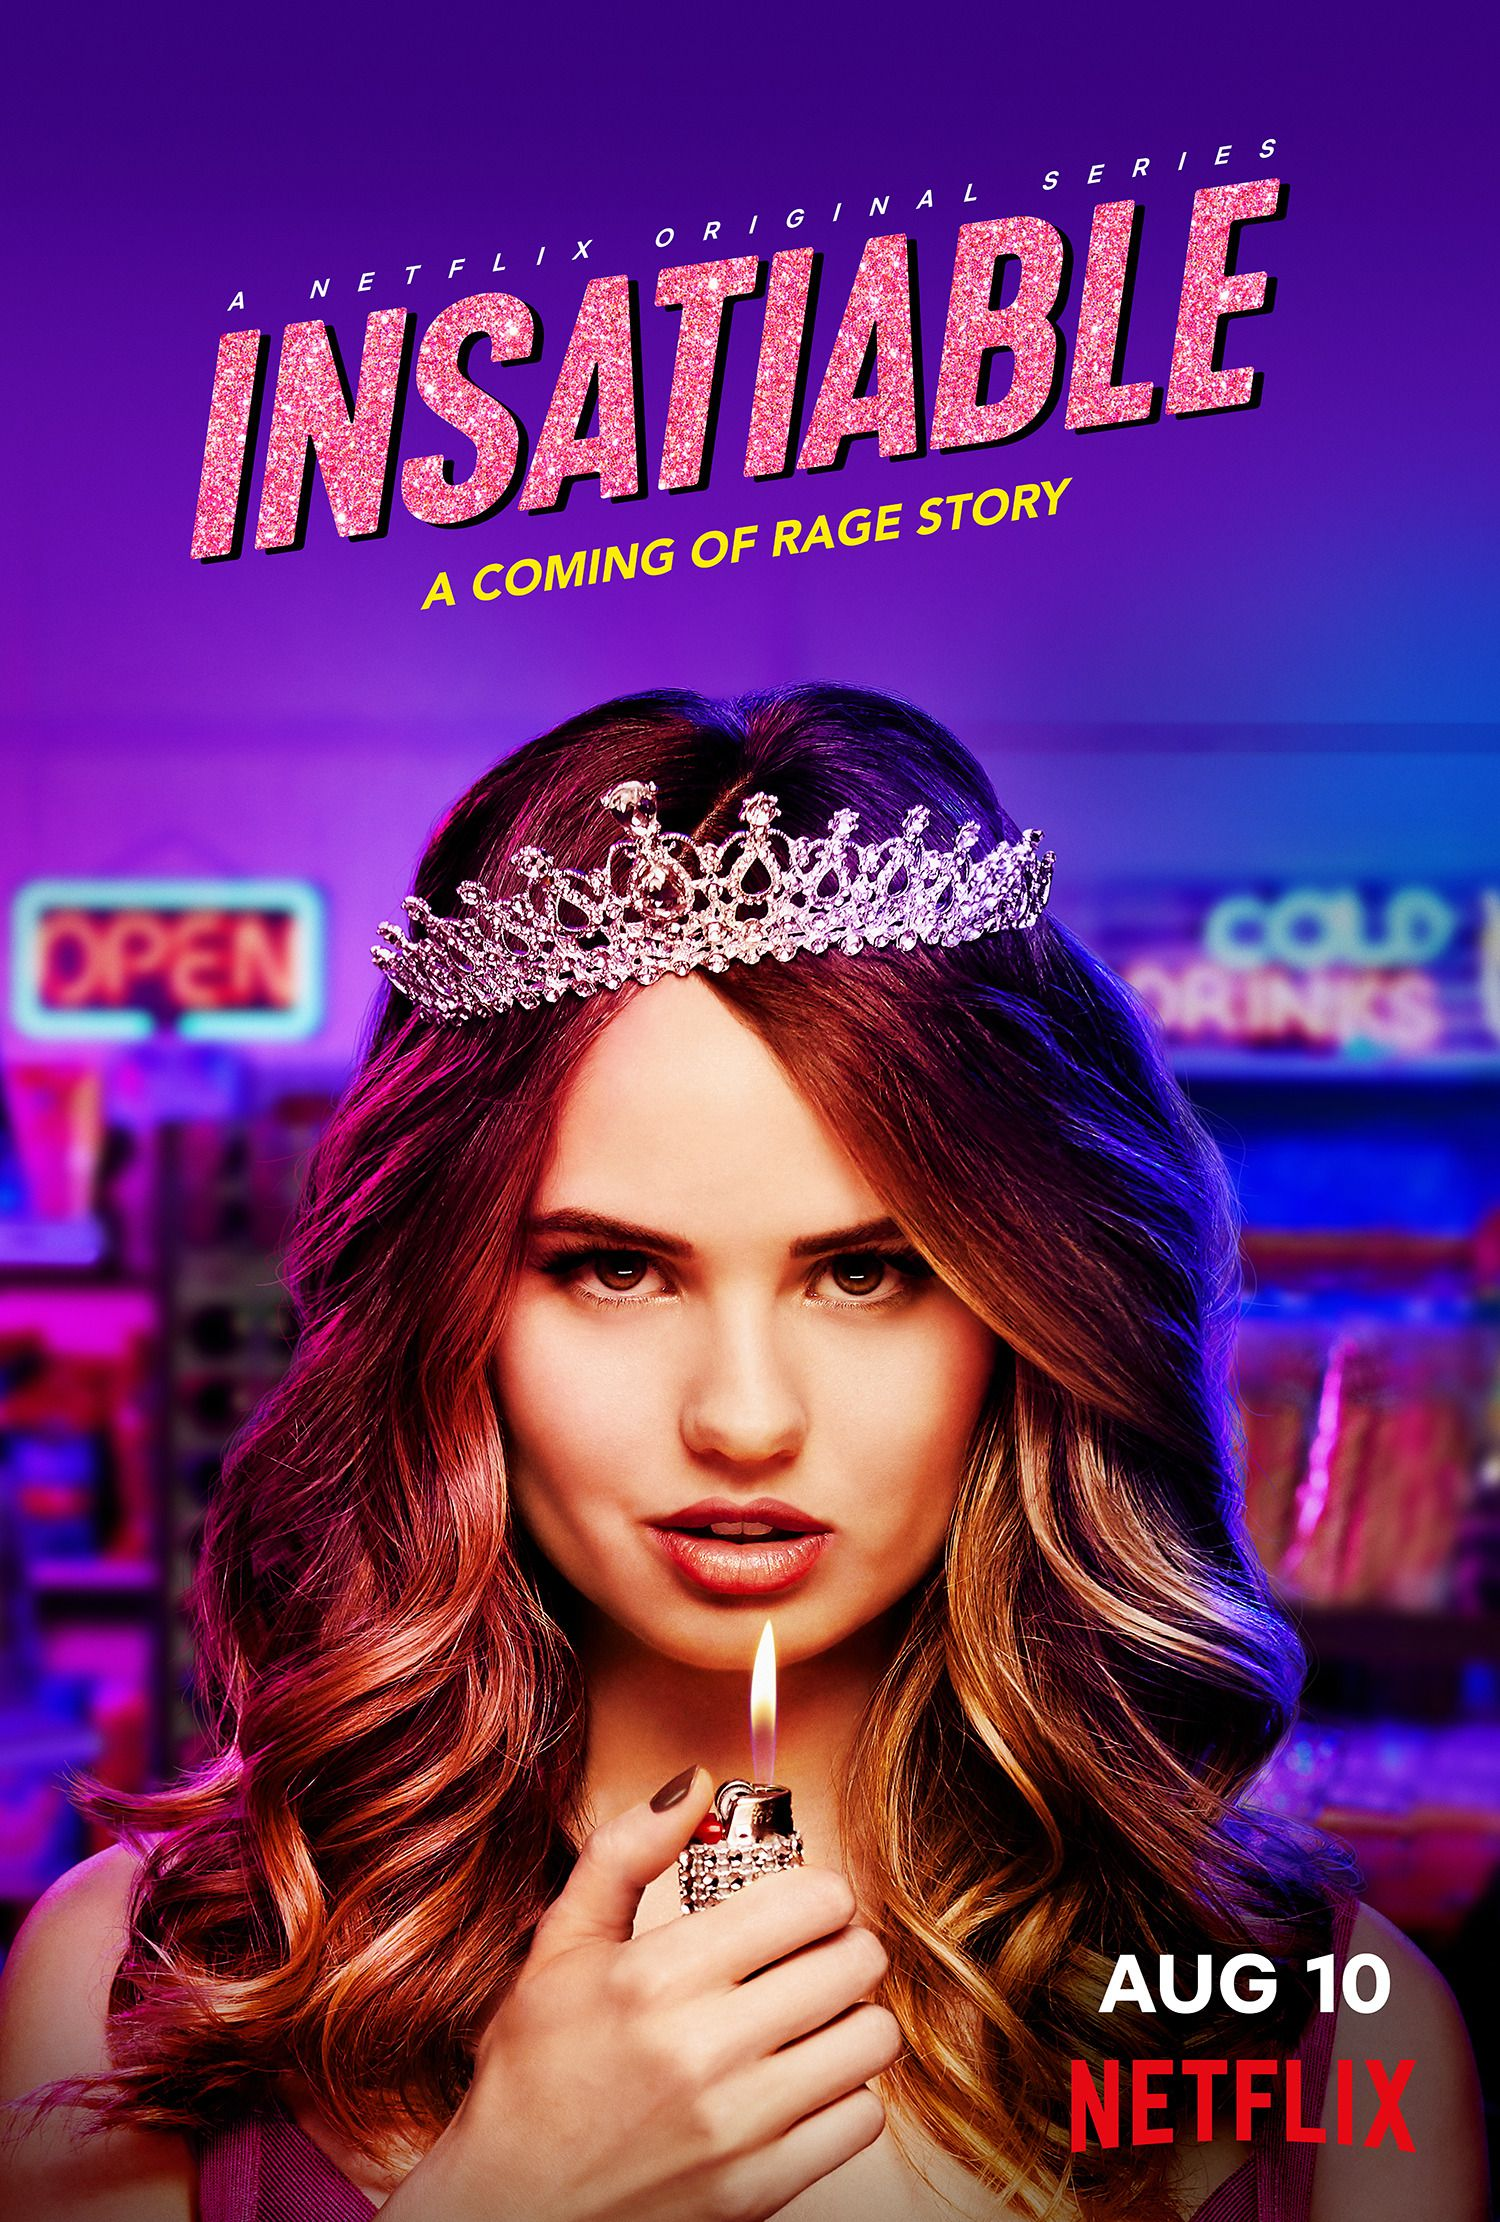 Return To The Main Poster Page For Insatiable 1 Of 2 S